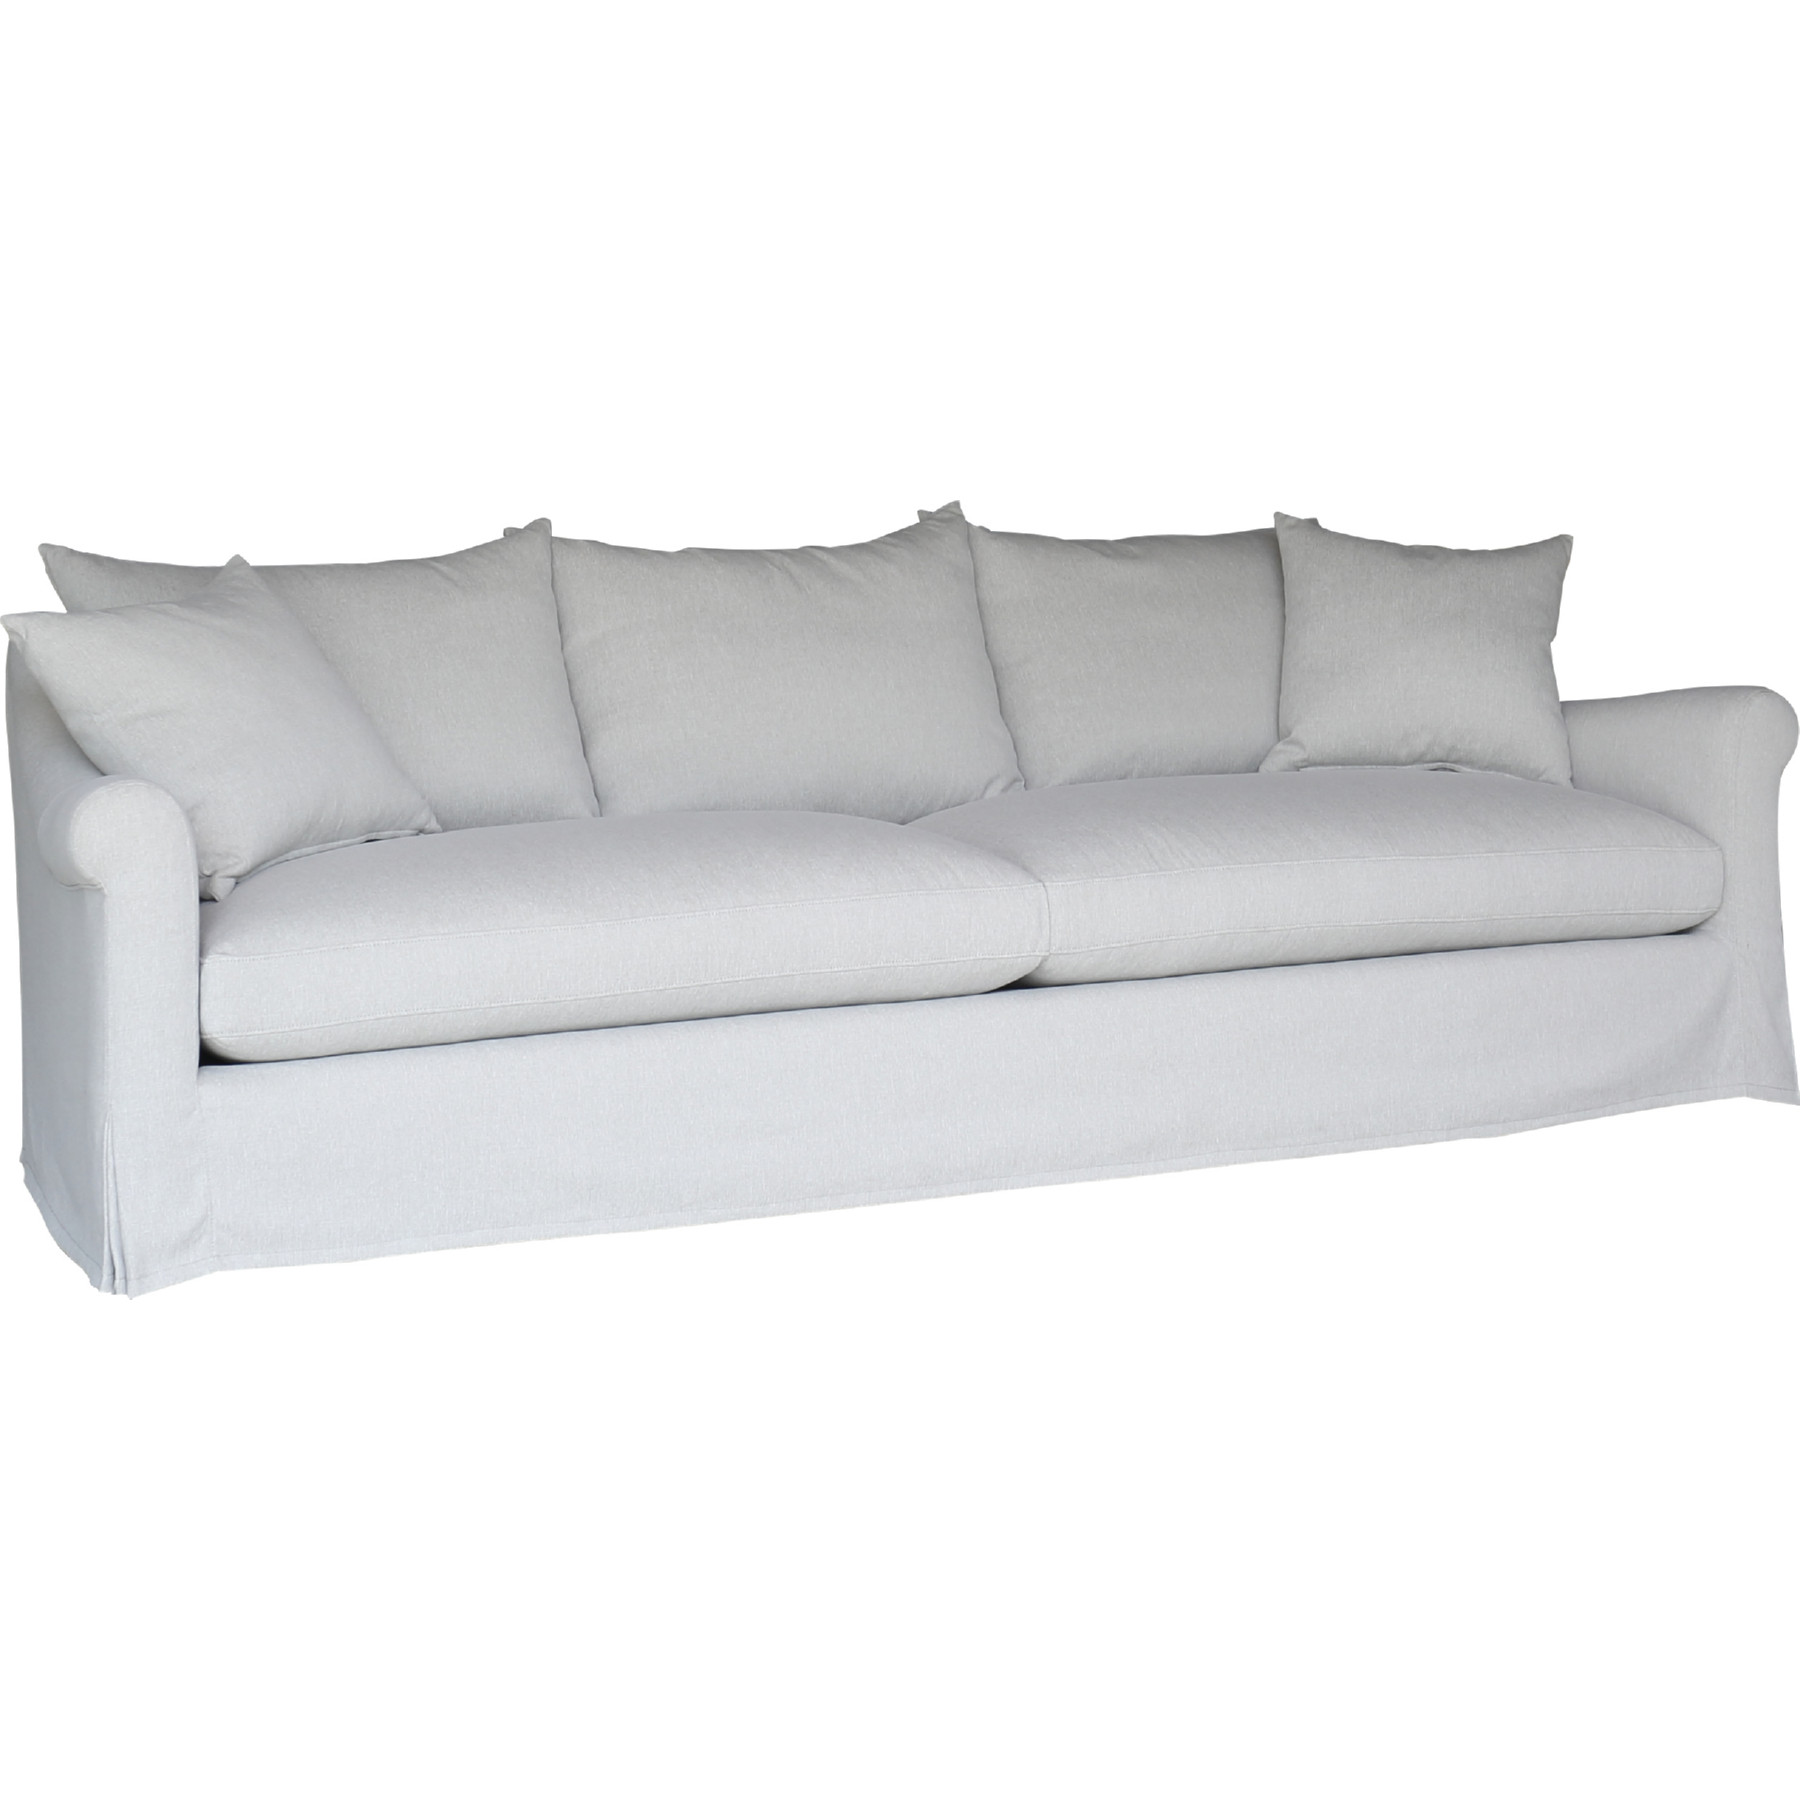 Fabulous Celeste Sofa In Twill Linen Slip Cover By Spectra Home Furnishings Gamerscity Chair Design For Home Gamerscityorg